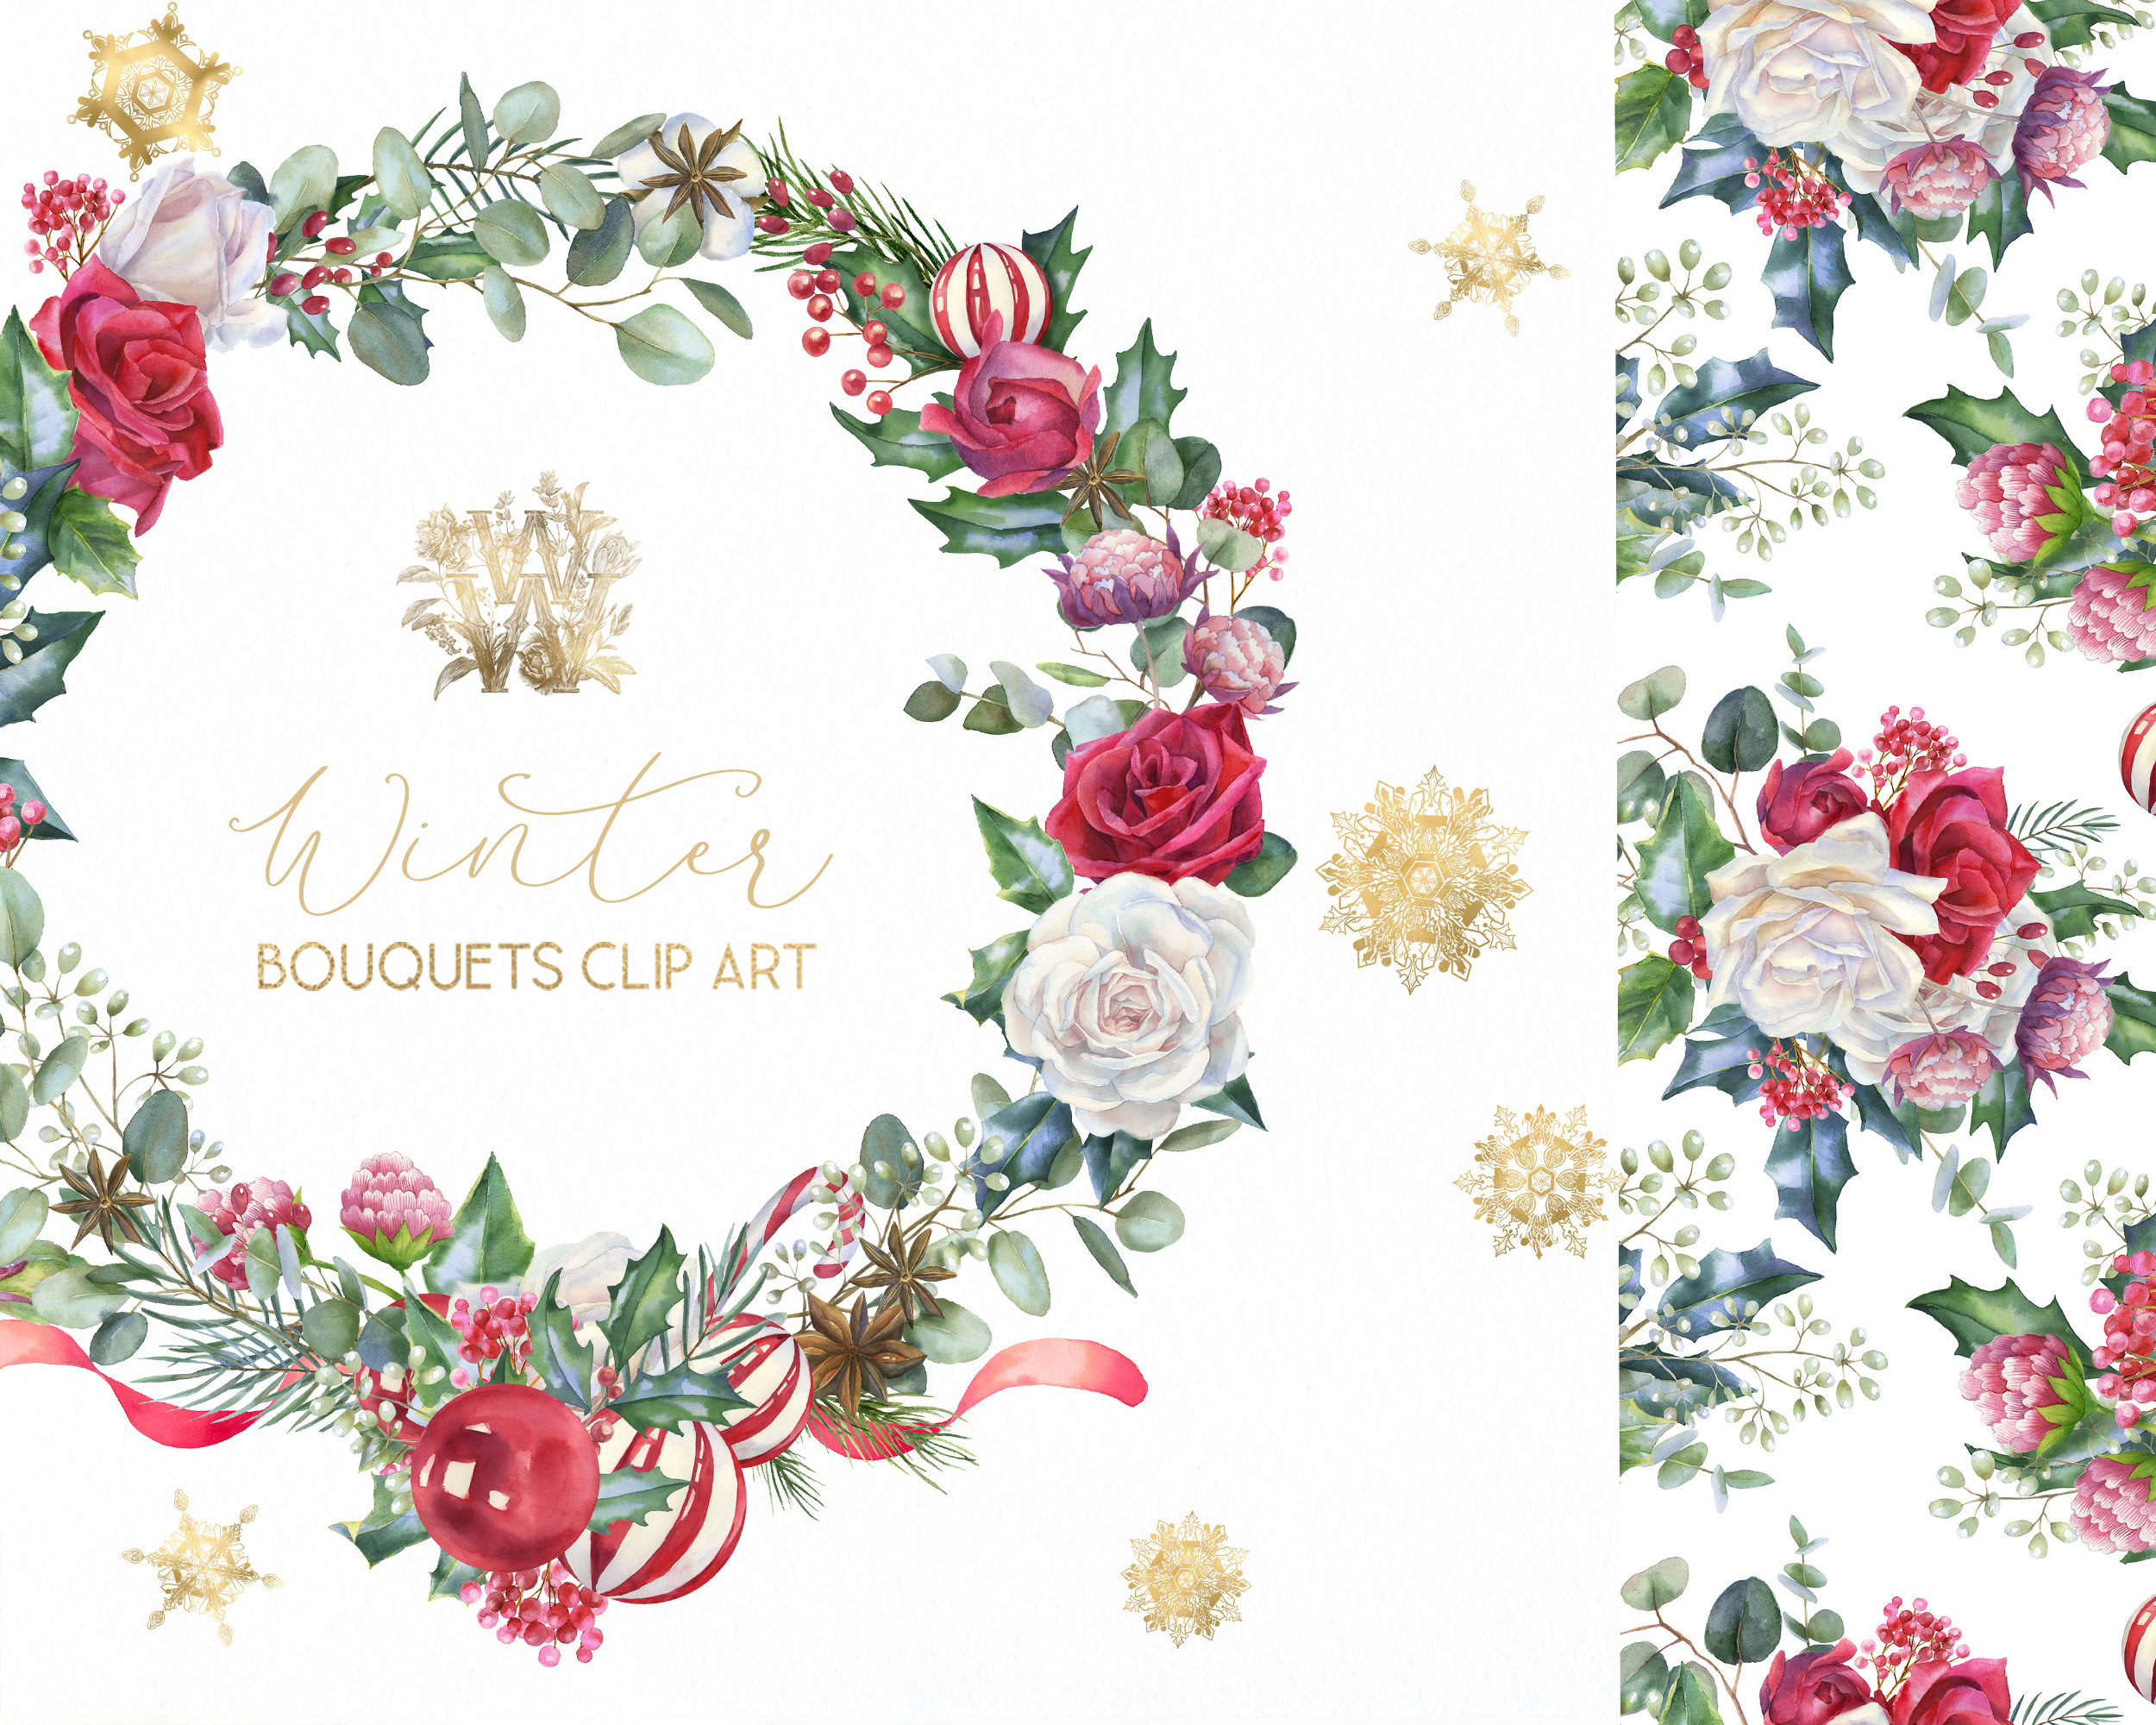 Christmas floral border clipart, Watercolor winter frame example image 10